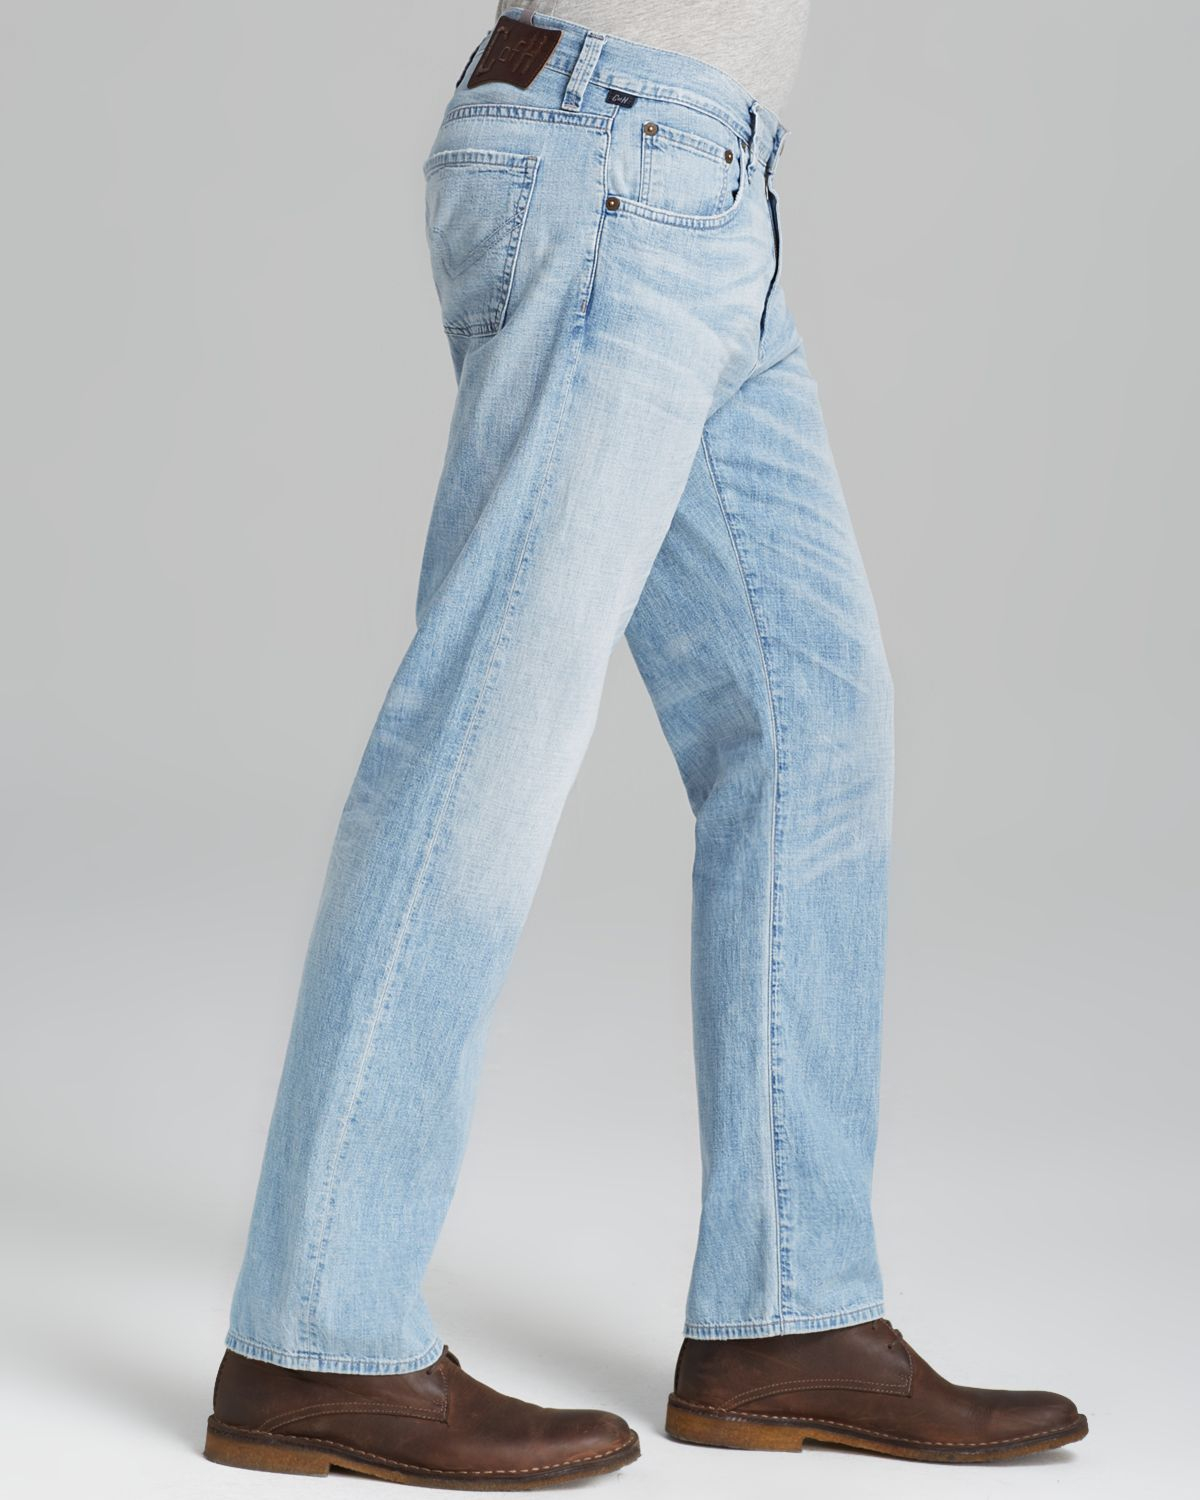 Mens wrangler white wash jeans – Global fashion jeans models